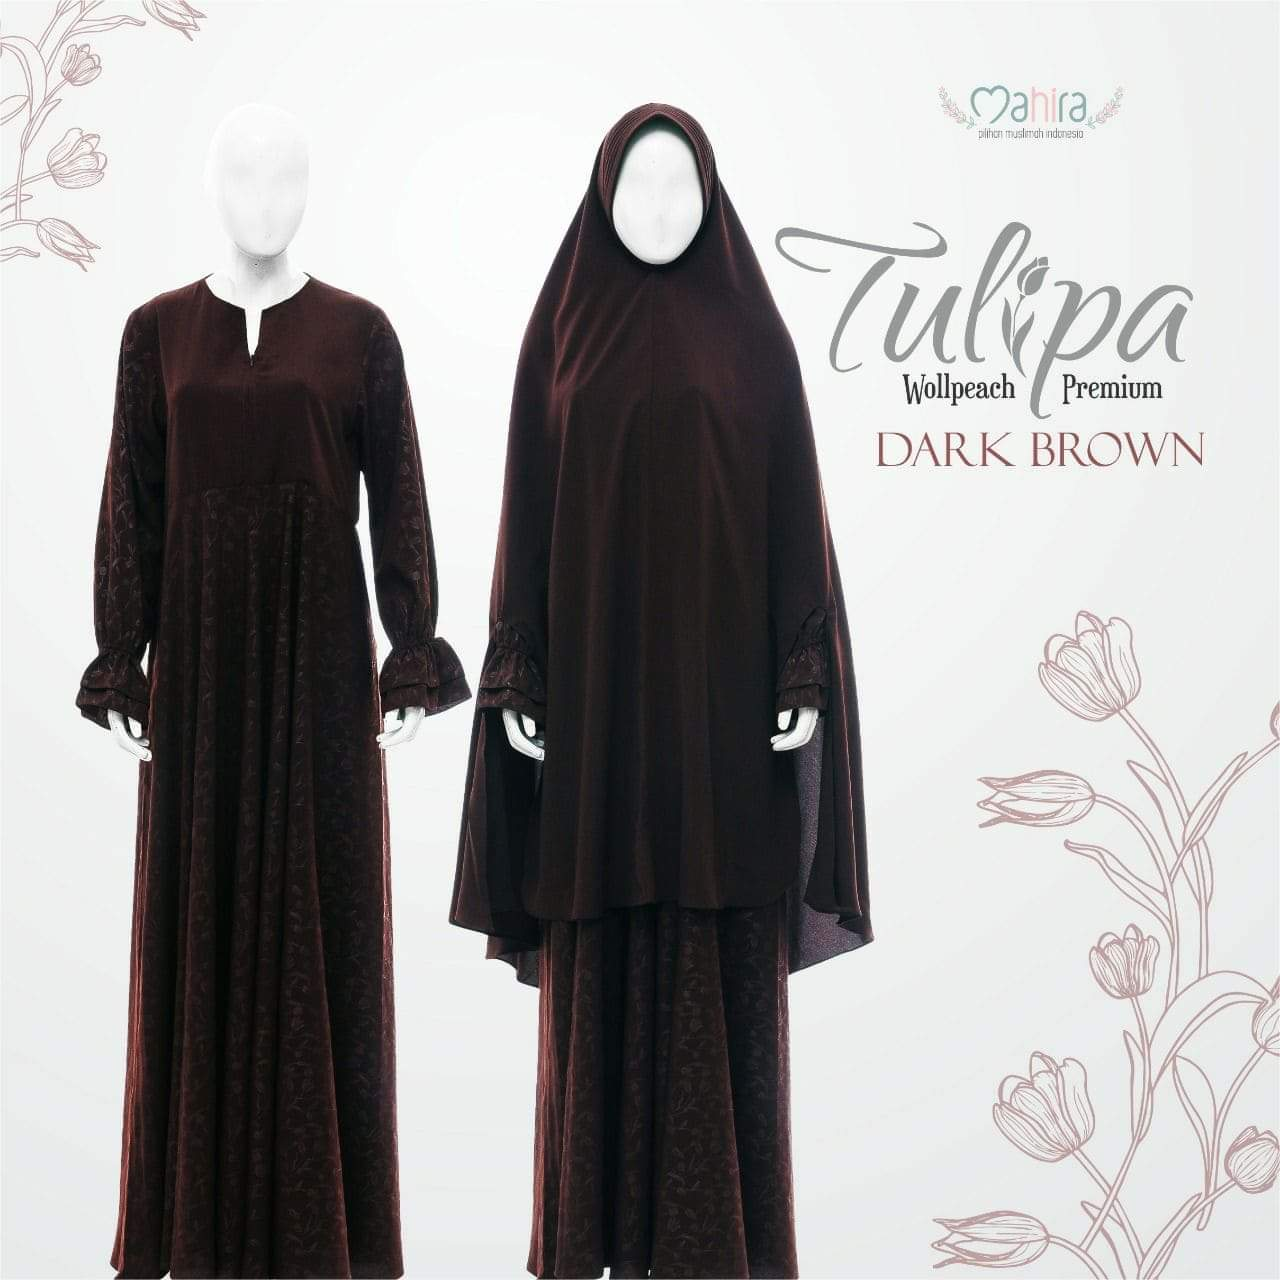 Mahira Tulipa Wollpeach Premium Dark Brown